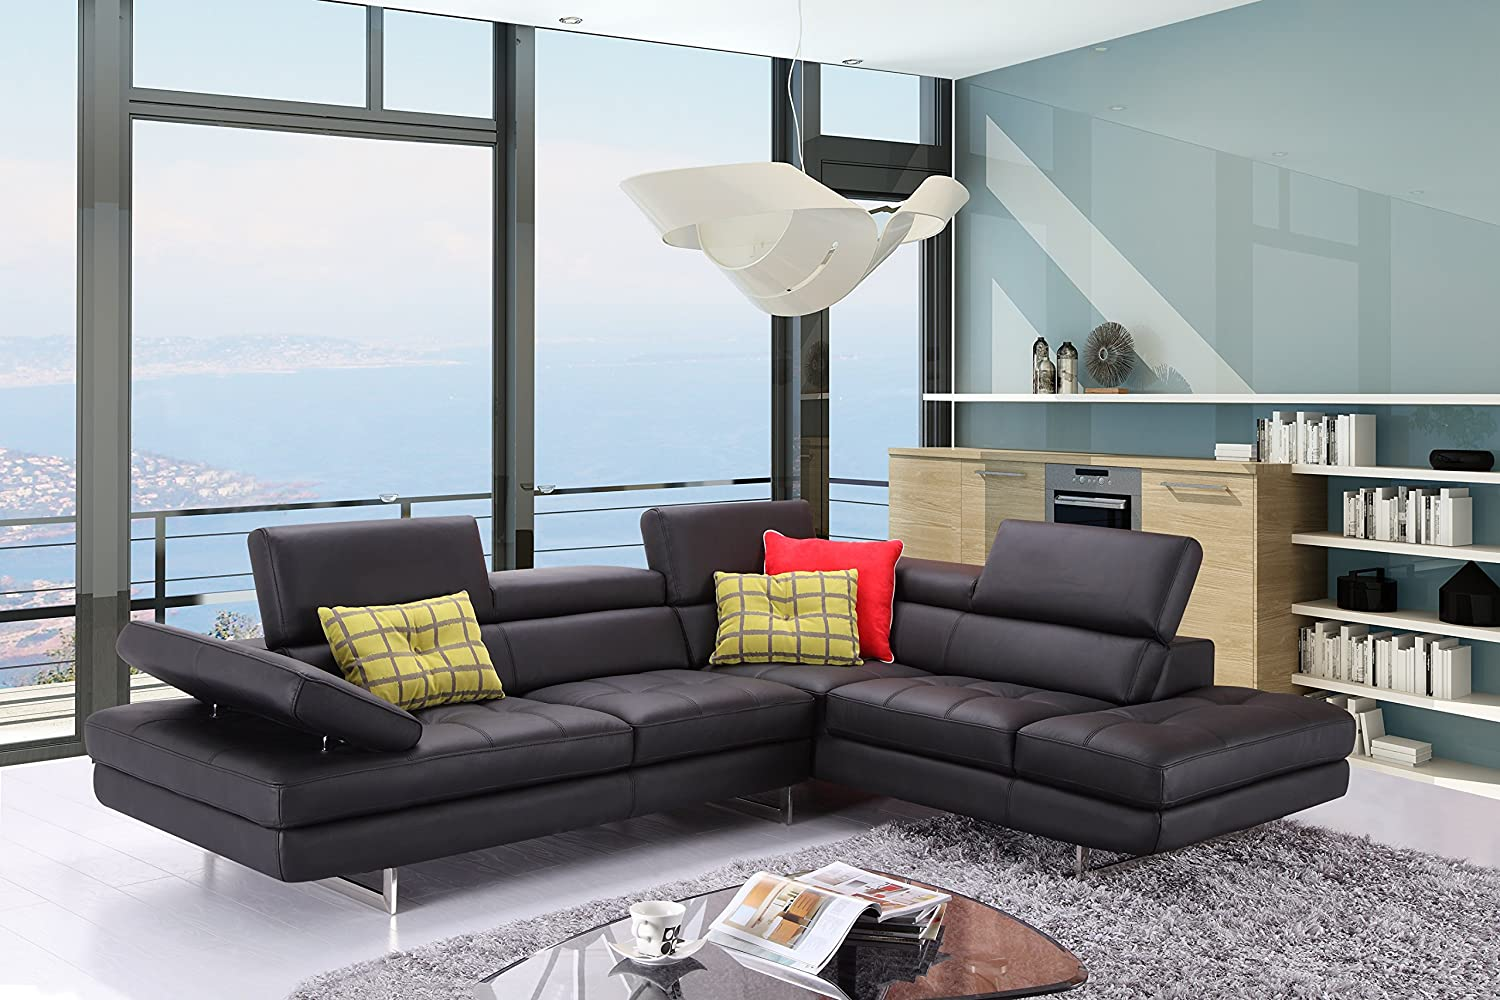 J and M Furniture A761 Italian Leather Sectional Slate Black, Right Hand Facing